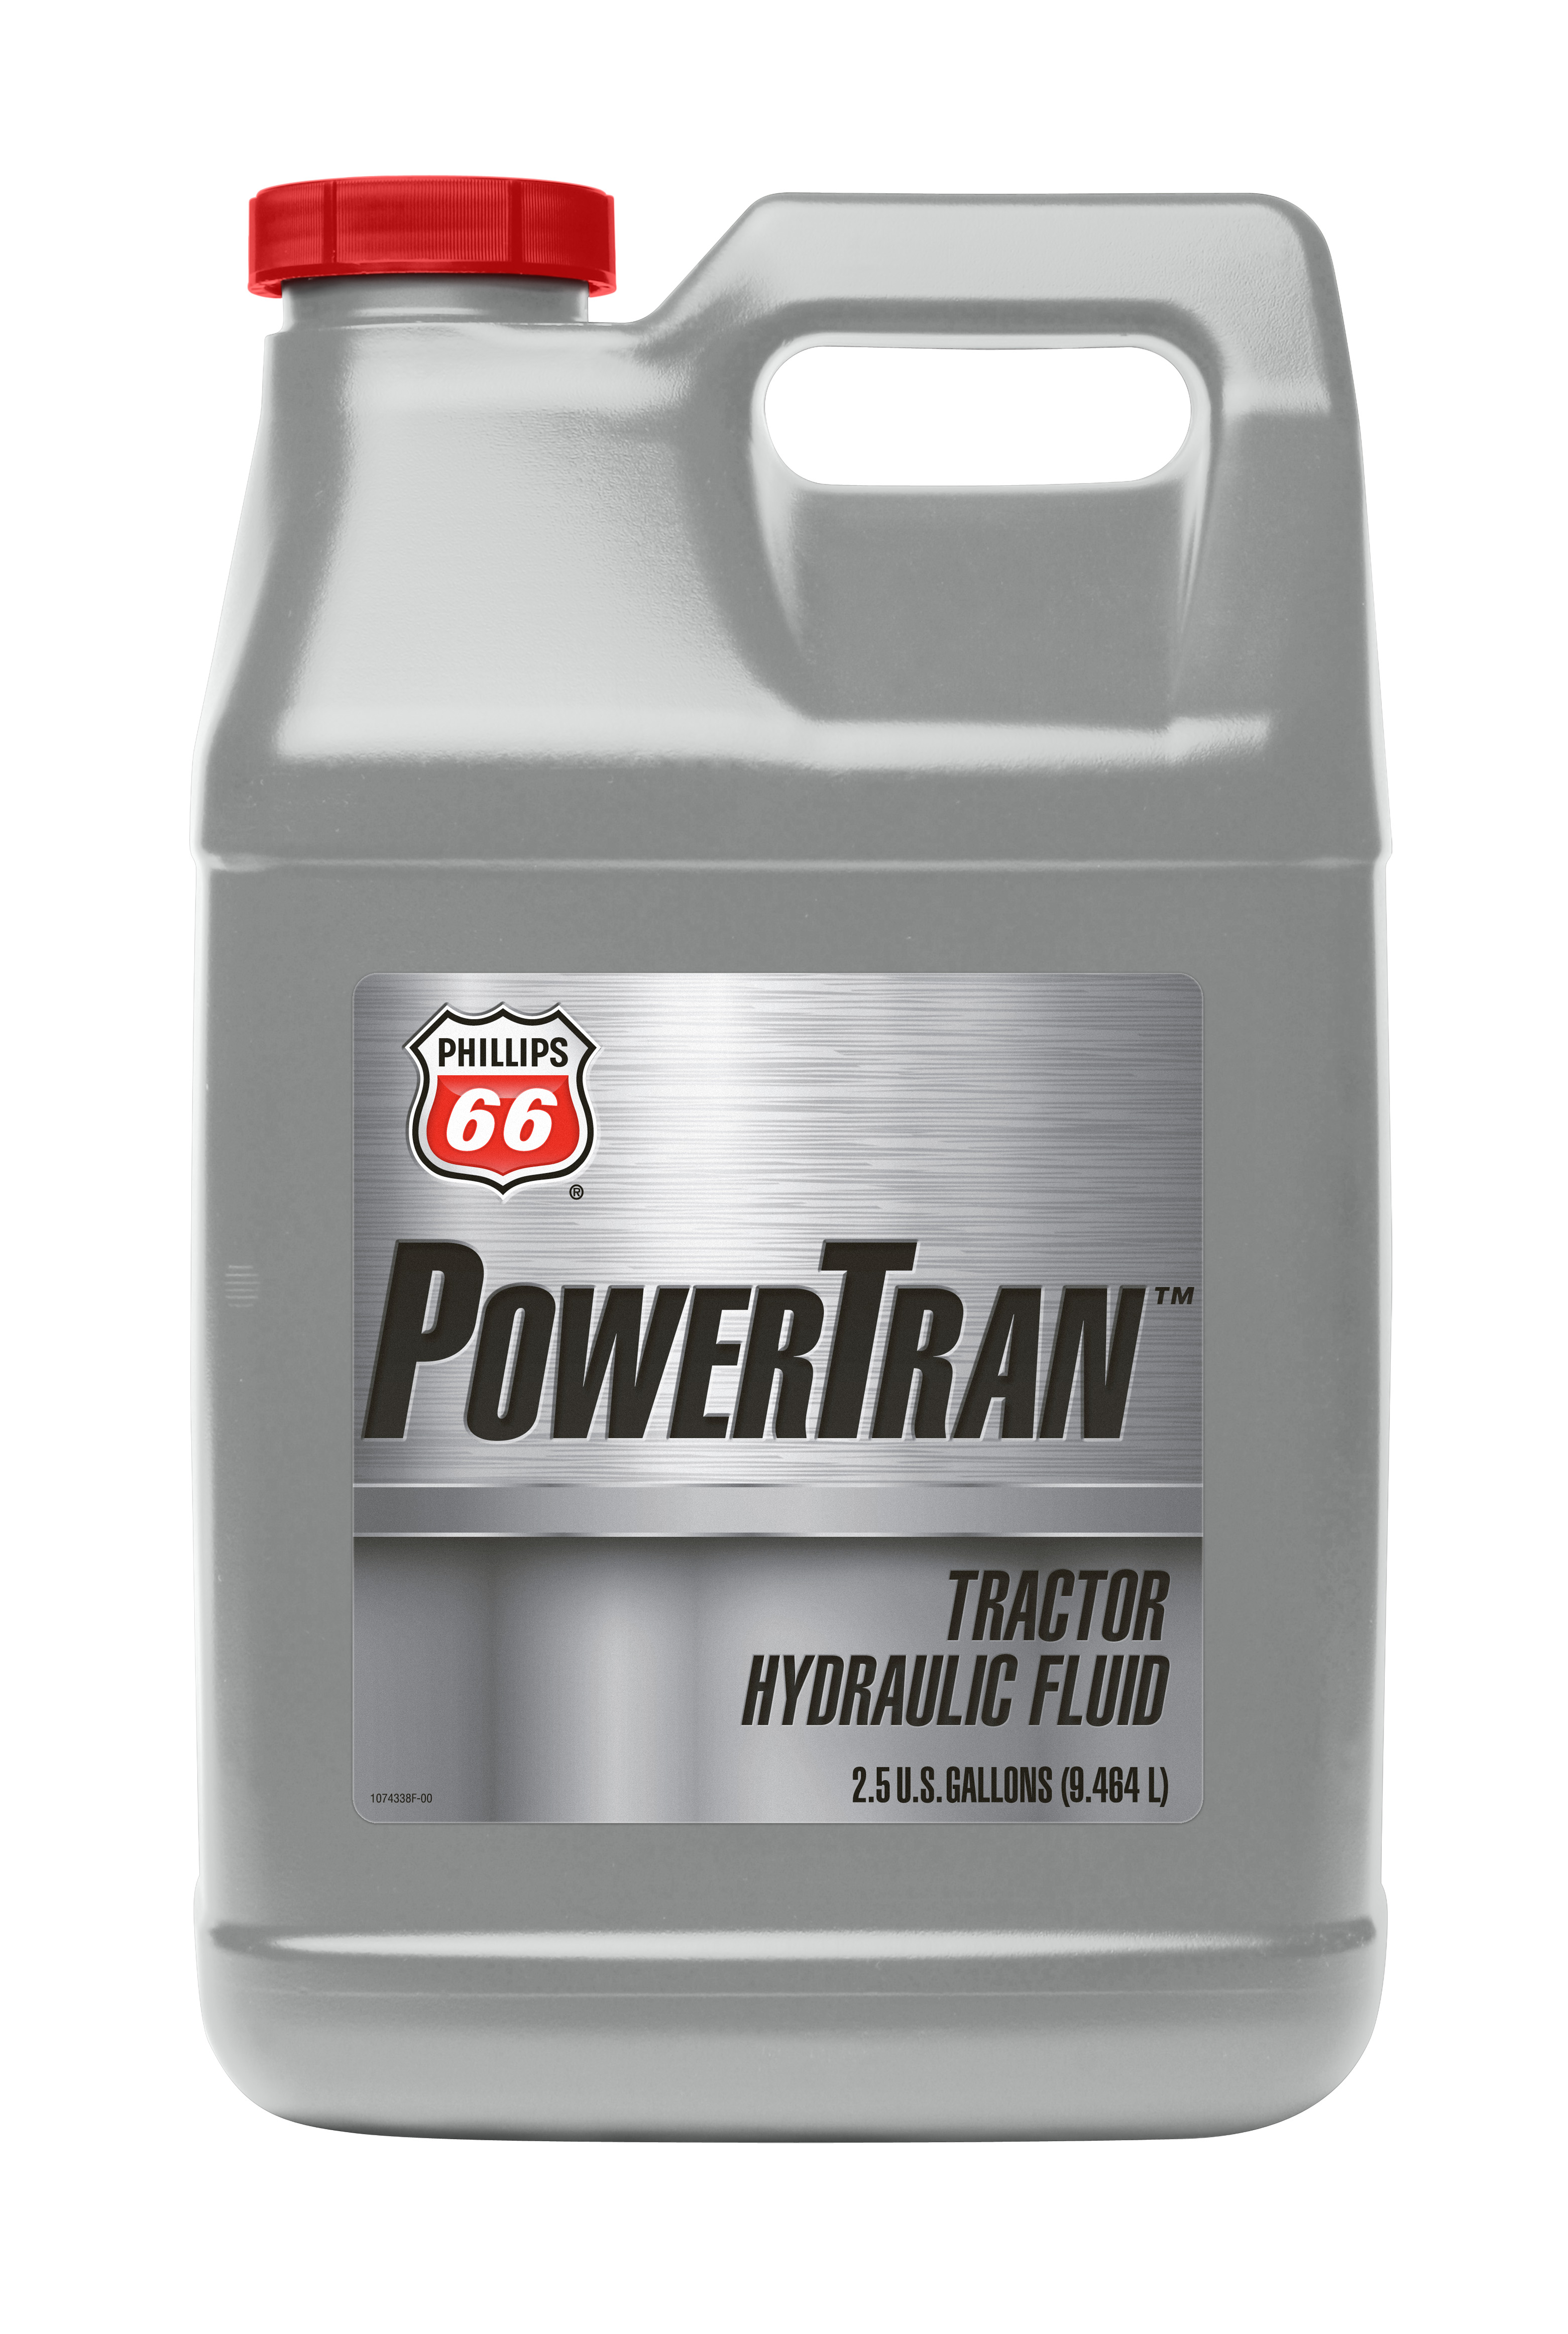 What are some stores that sell tractor hydraulic oil?